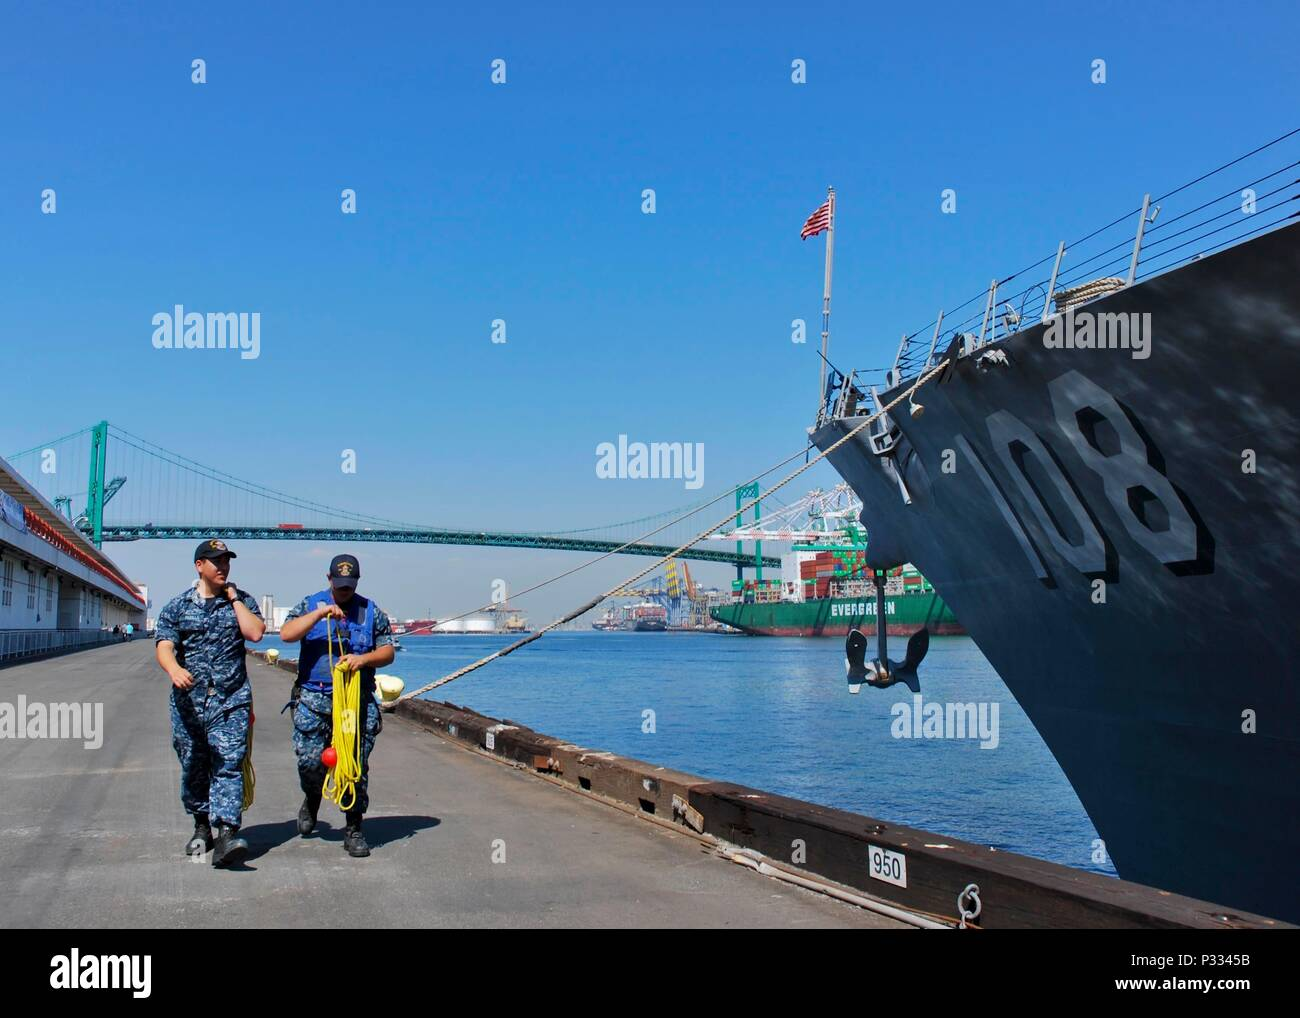 160830-N-HP195-032 SAN PEDRO, Calif. (Aug. 30, 2016) Seaman Jacob Padilla, left, and Petty Officer 3rd Class Keith Fanelli, deck department Sailors aboard USS Wayne E. Meyer (DDG 108), return to their ship from mooring duties at the Port of Los Angeles in preparation for LA Fleet Week. Wayne E. Meyer and USS America (LHA 6), both homeported in San Diego, will be docked pierside for the duration of LA Fleet Week, the first officially designated Fleet Week event to be held in the city of Los Angeles. (U.S. Navy photo by MC1 Christopher Okula/Released) - Stock Image